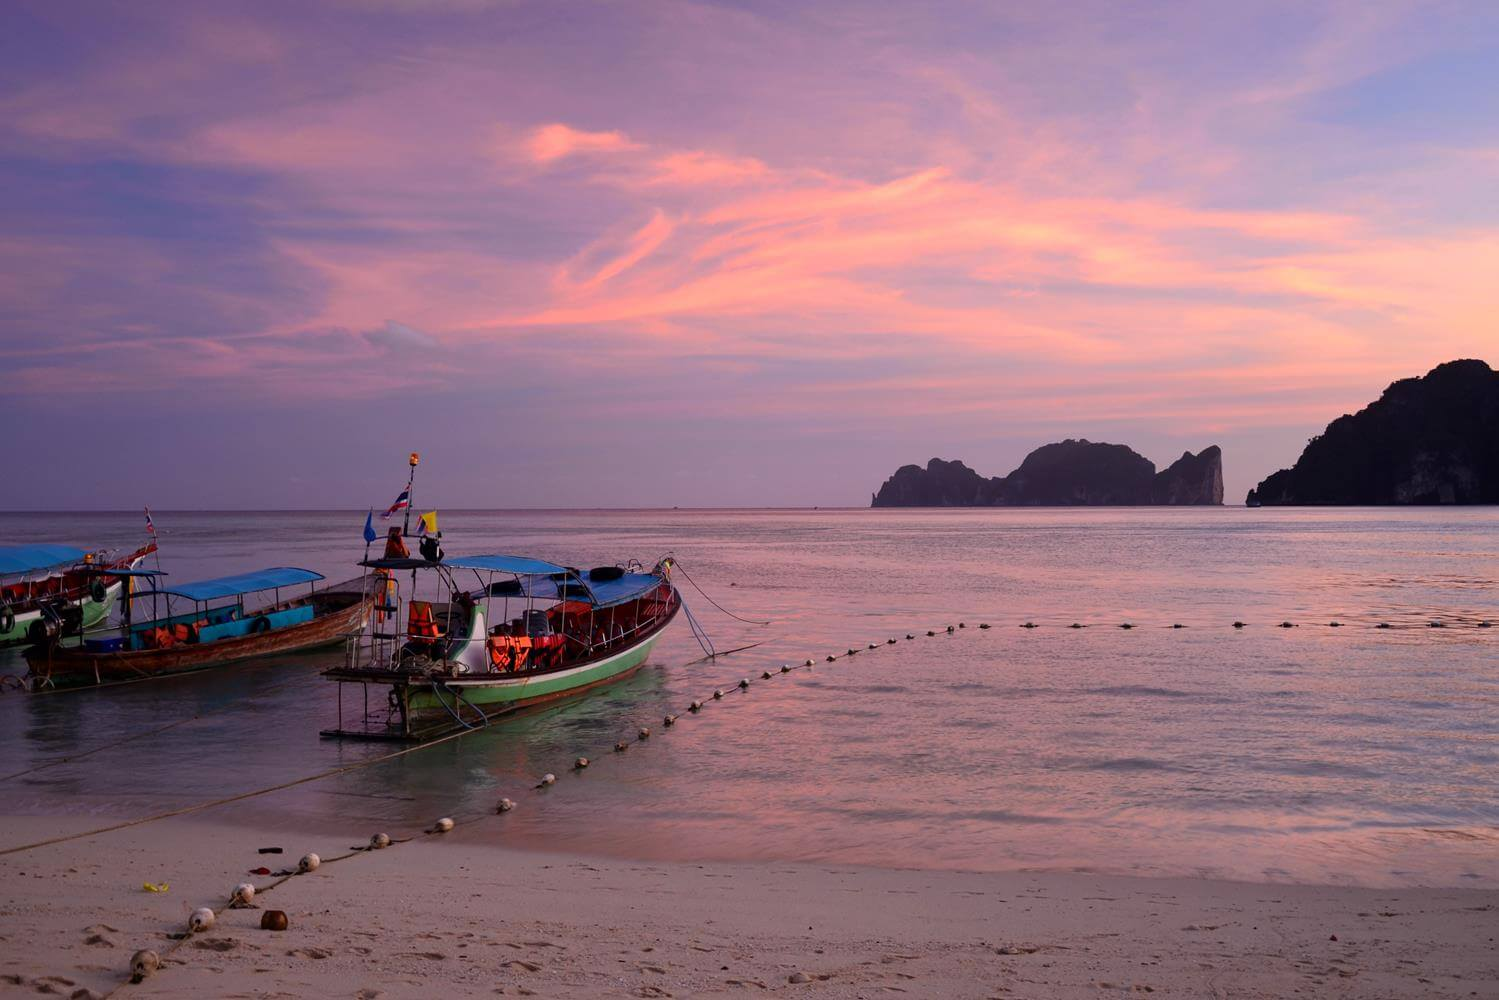 Thailand: Sea and fishing boats at sunset